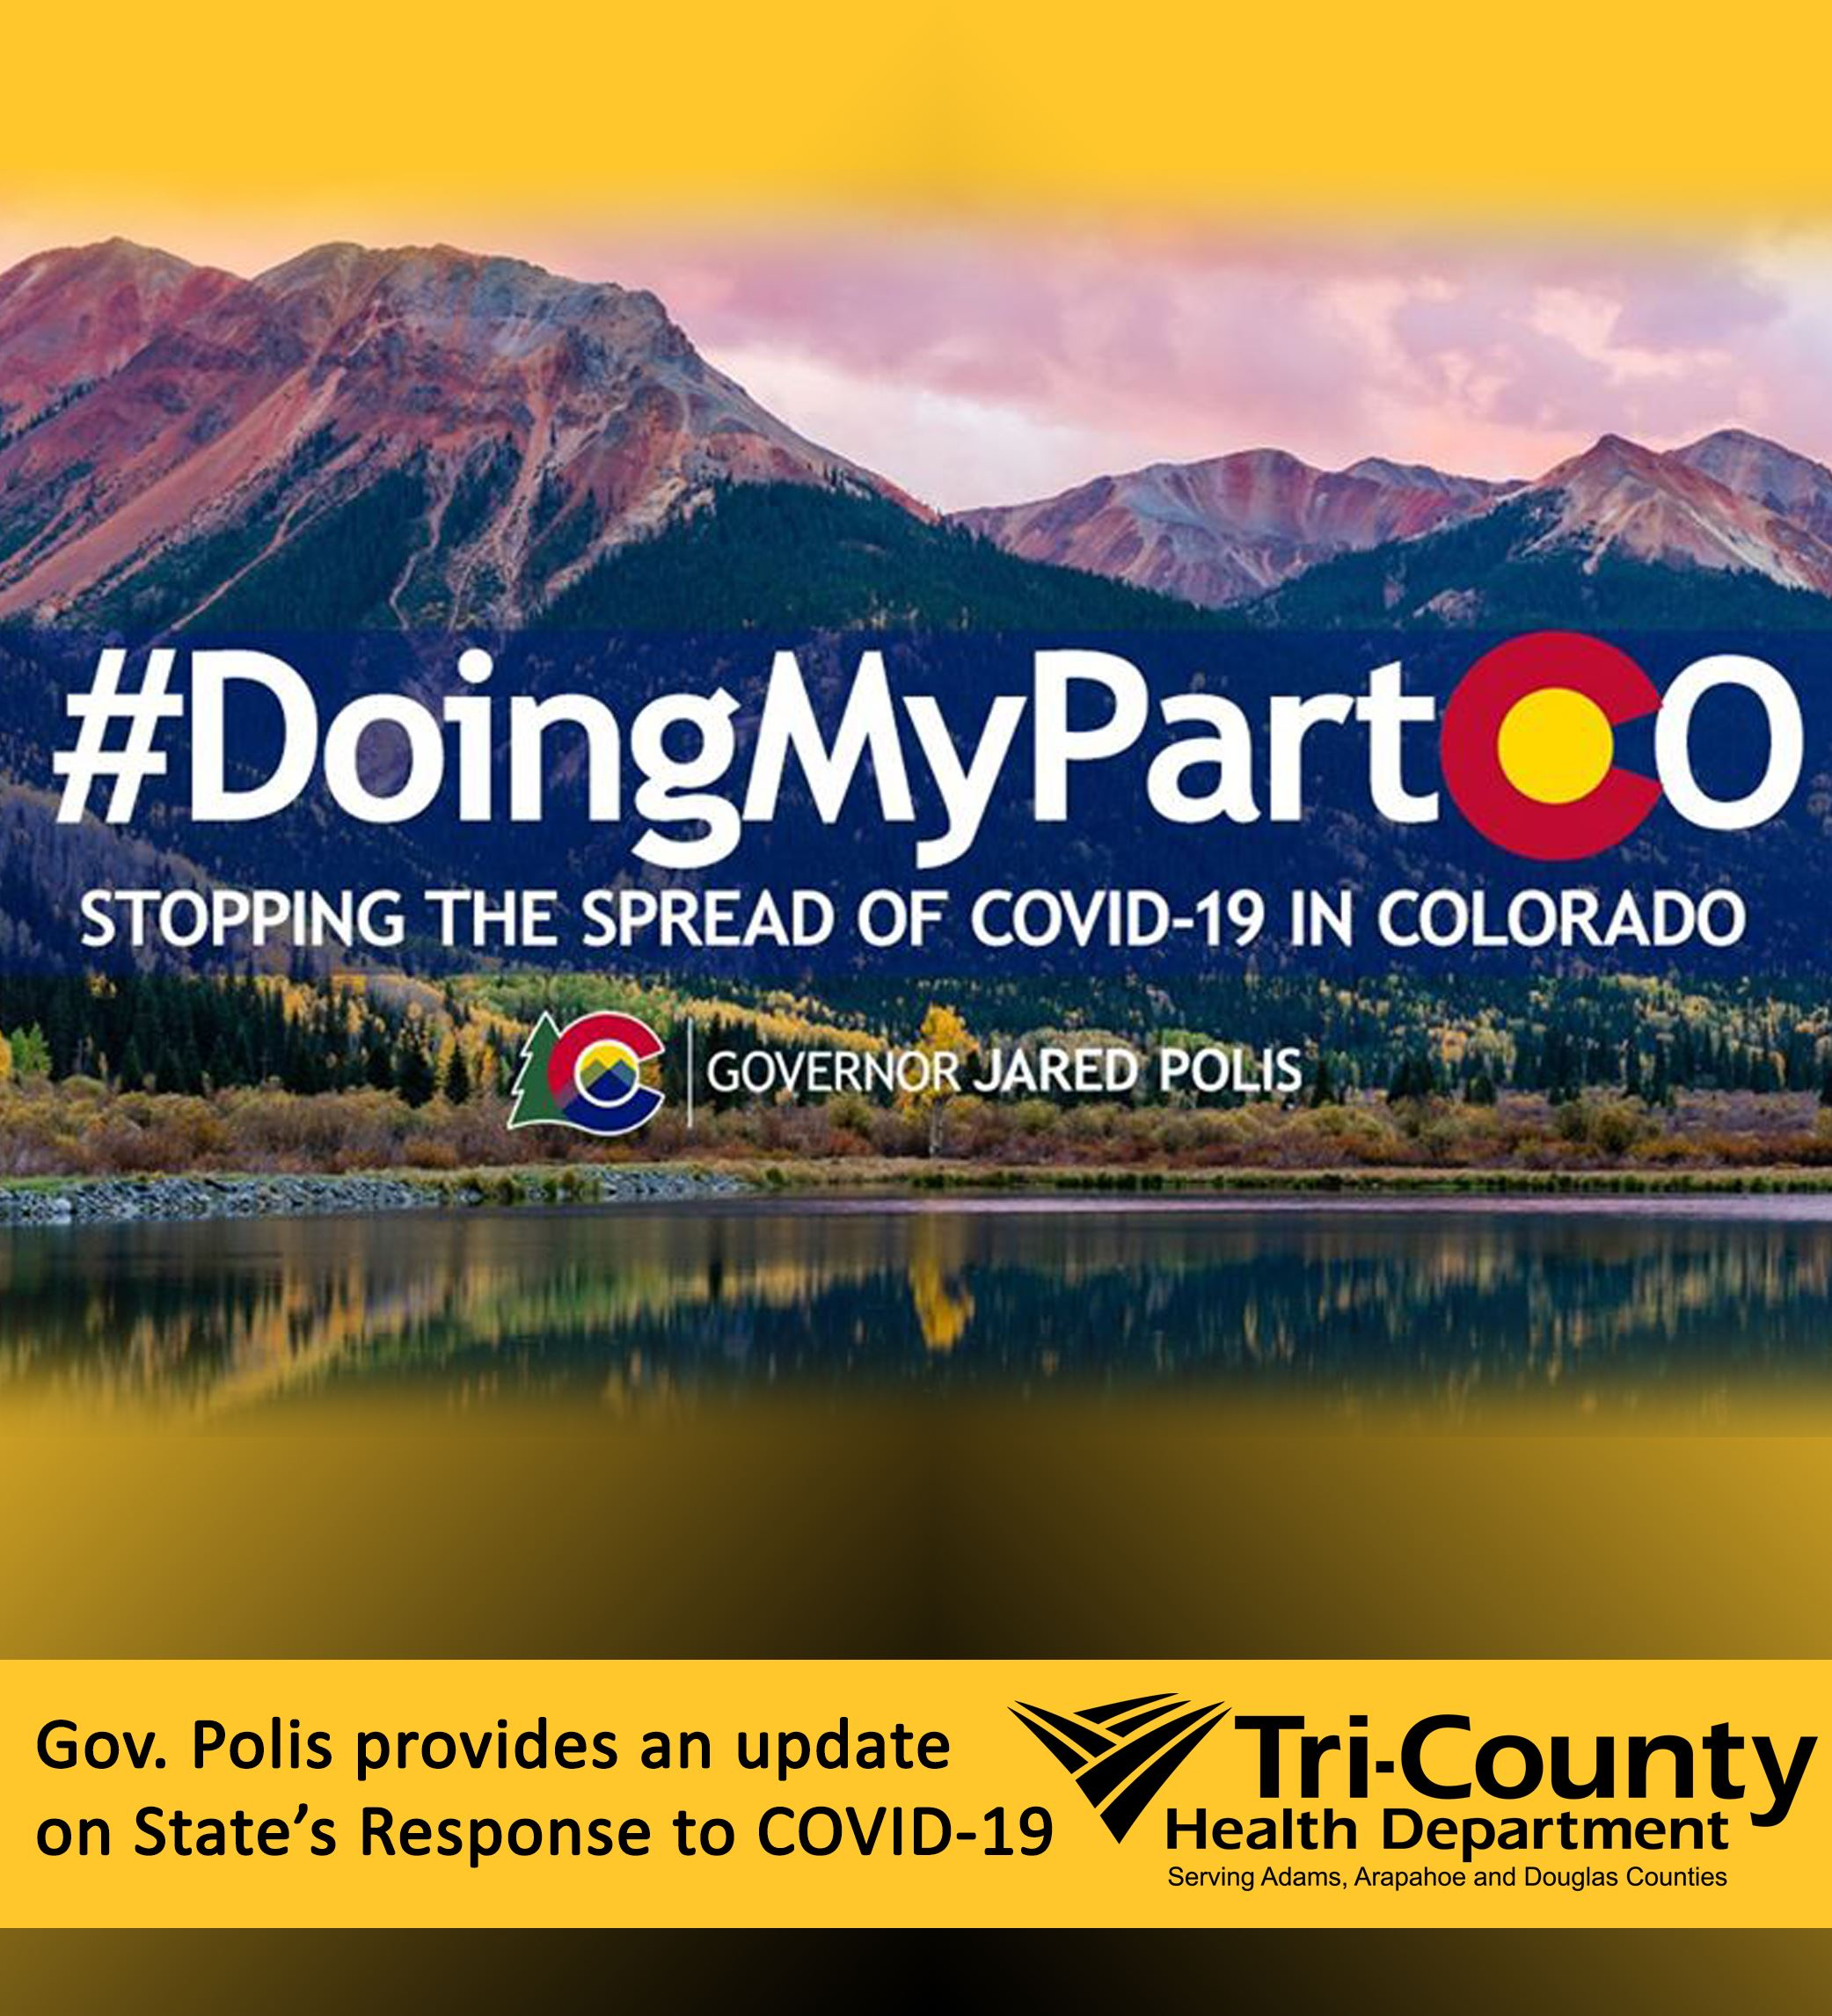 #DoingMyPartCO Stopping the Spread of COVID-19 in Colorado